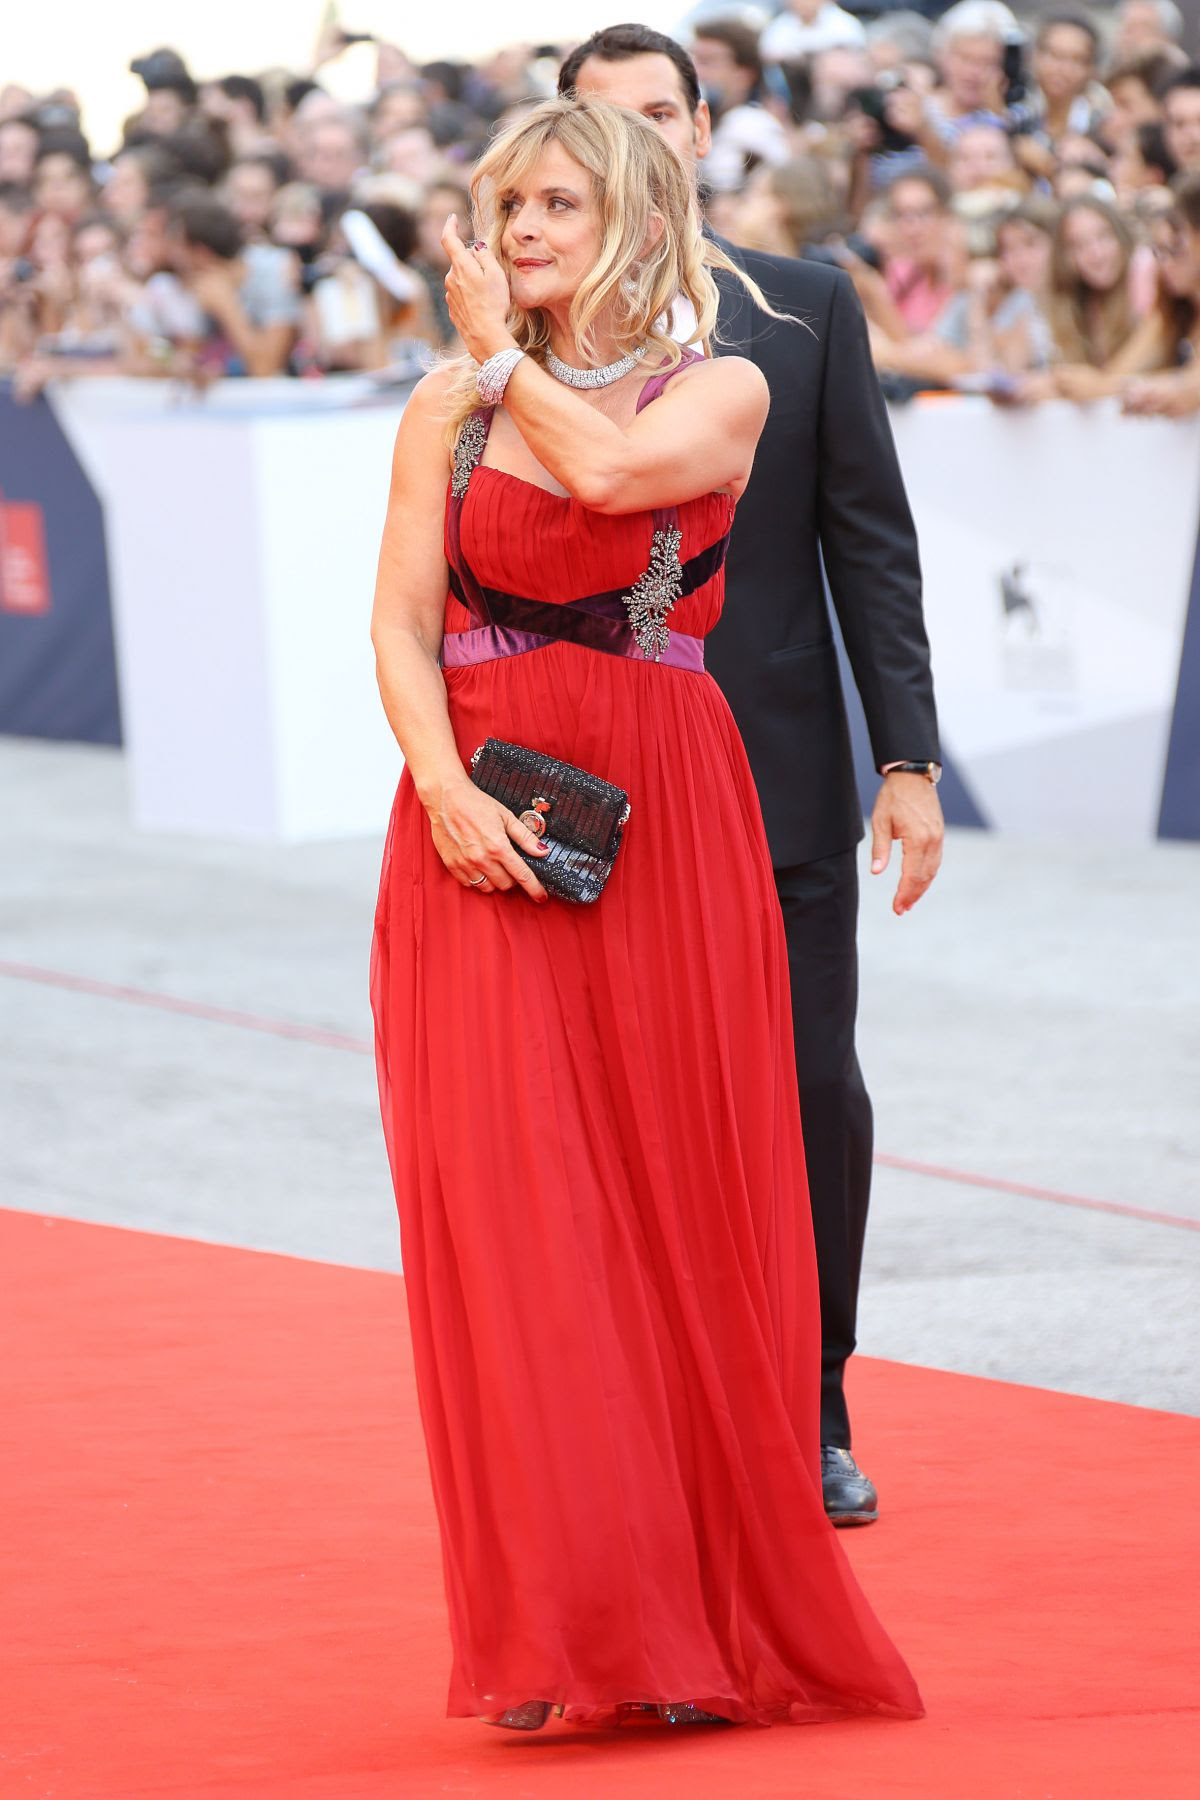 http://www.hawtcelebs.com/wp-content/uploads/2015/09/nastassja-kinski-at-everest-premiere-and-72nd-venice-film-festival-opening-ceremony_2.jpg